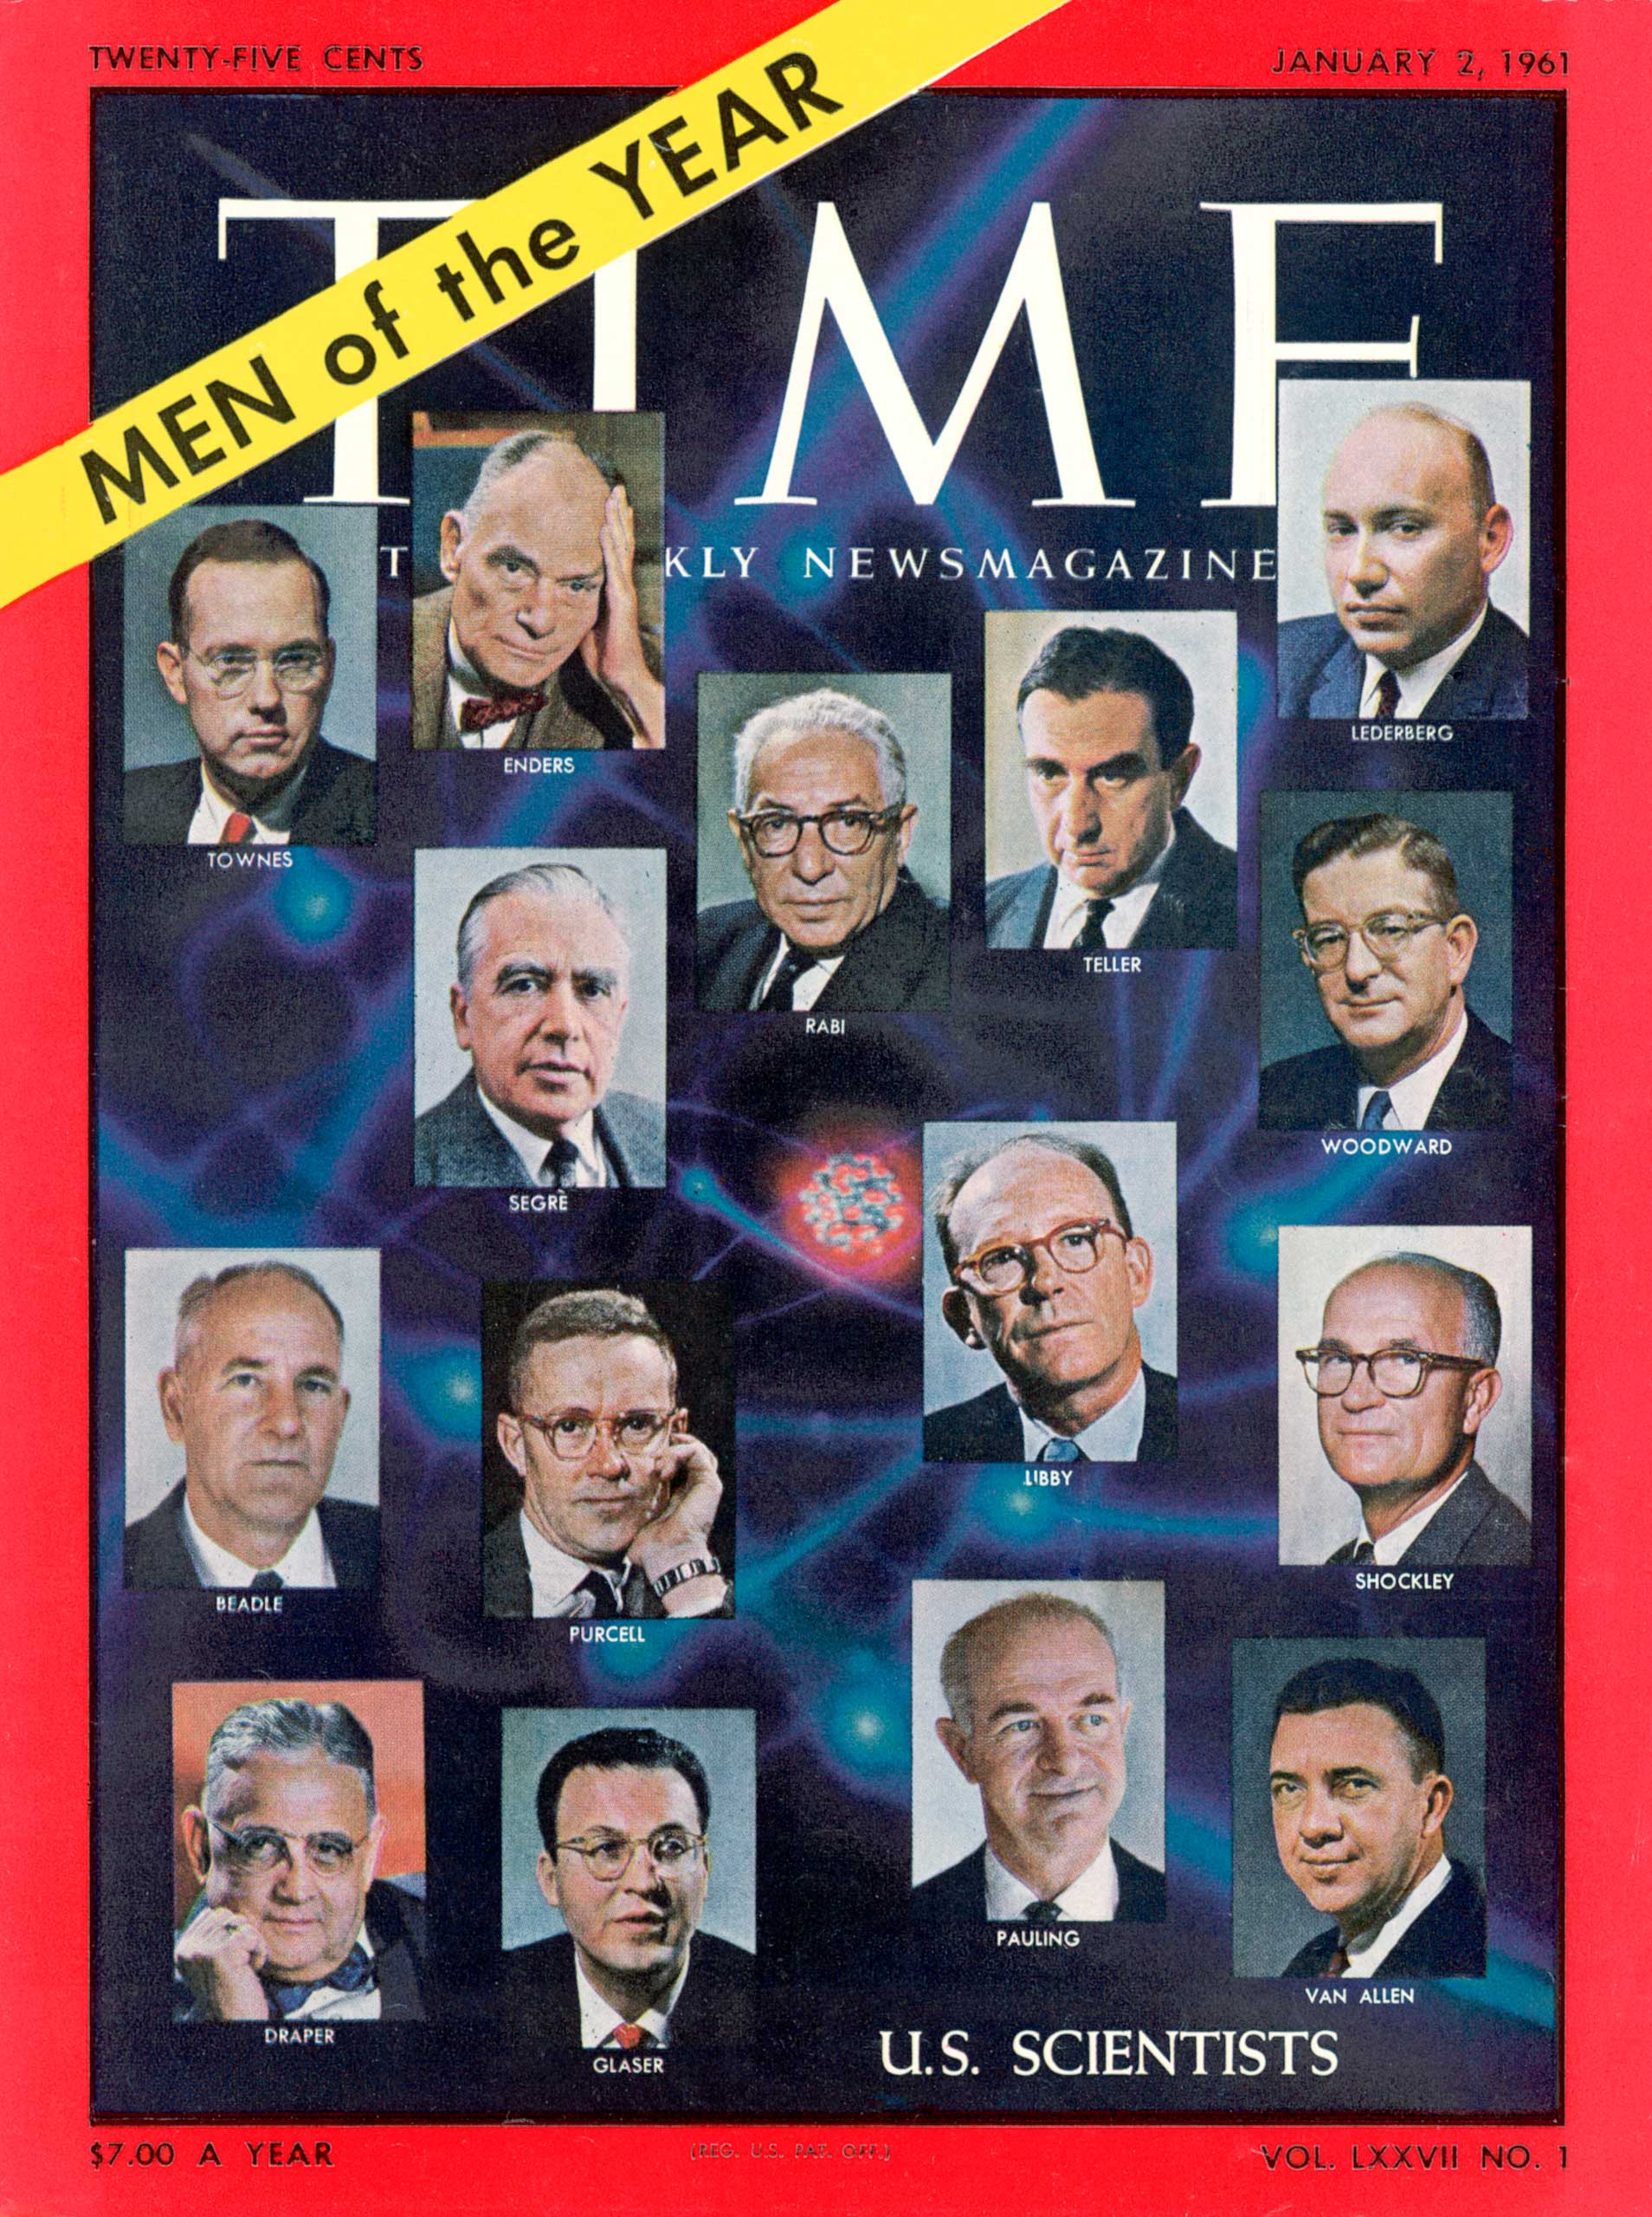 1960: U.S. Scientists